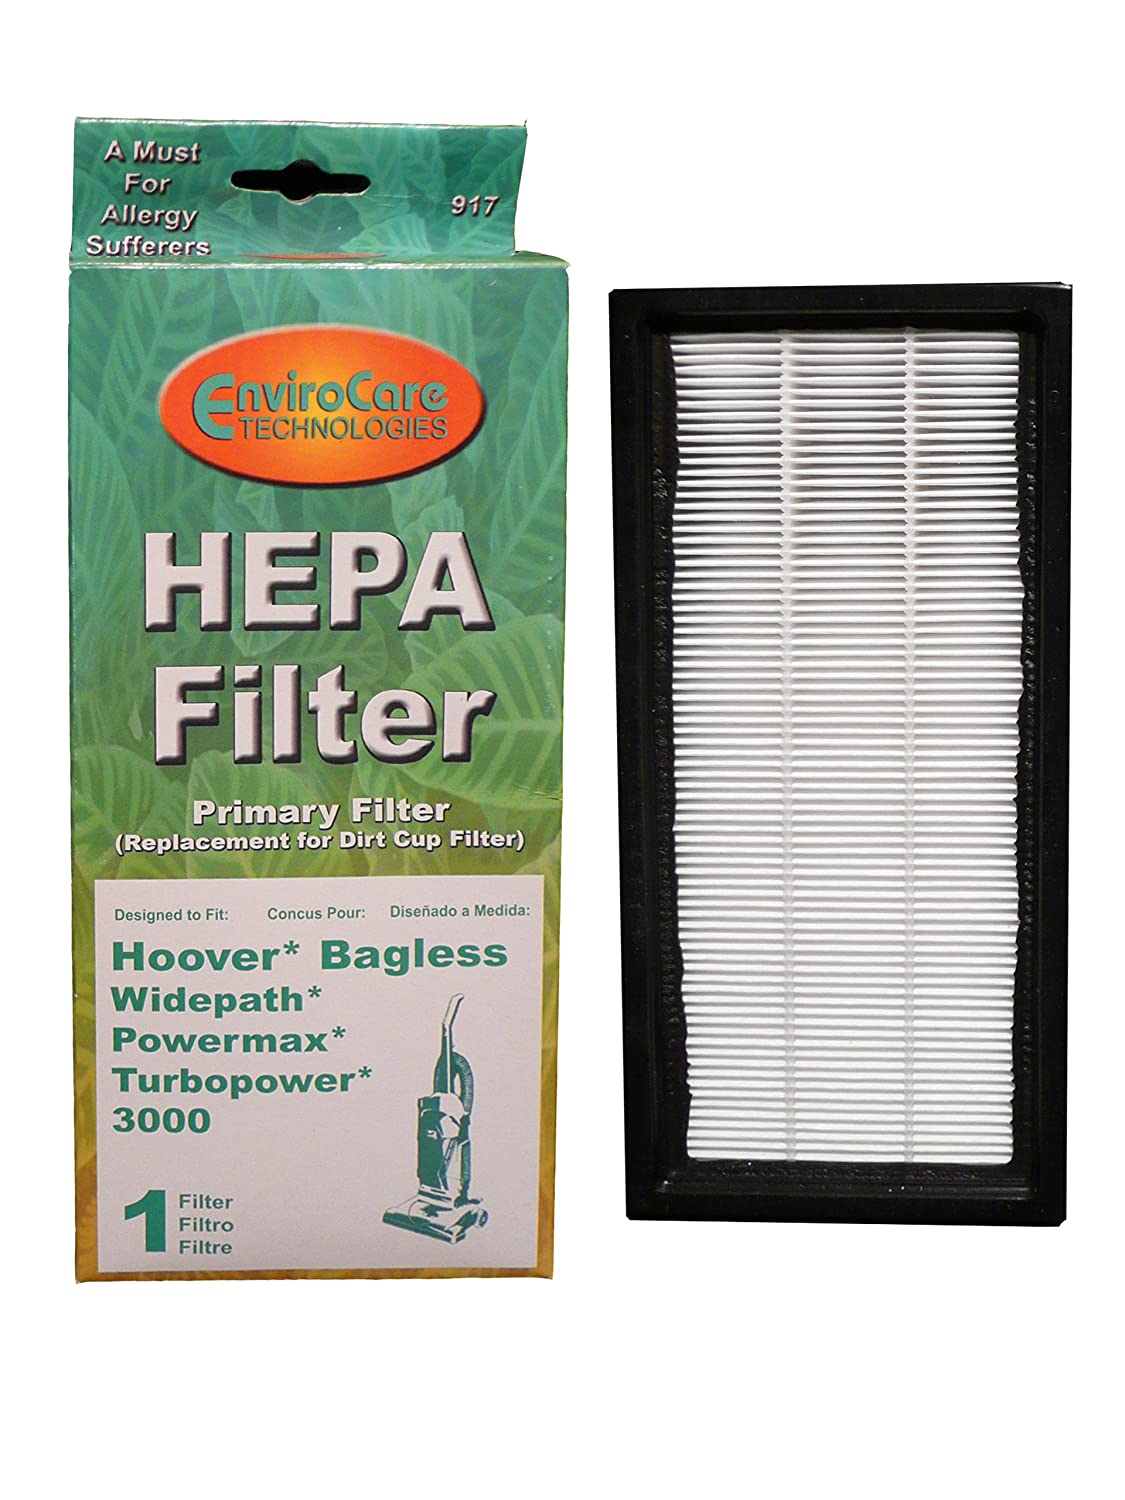 Hoover Bagless Widepath、Powermax、Turbopower 3000 HEPAフィルタPrimaryフィルタby EnviroCare B003MNQ98E